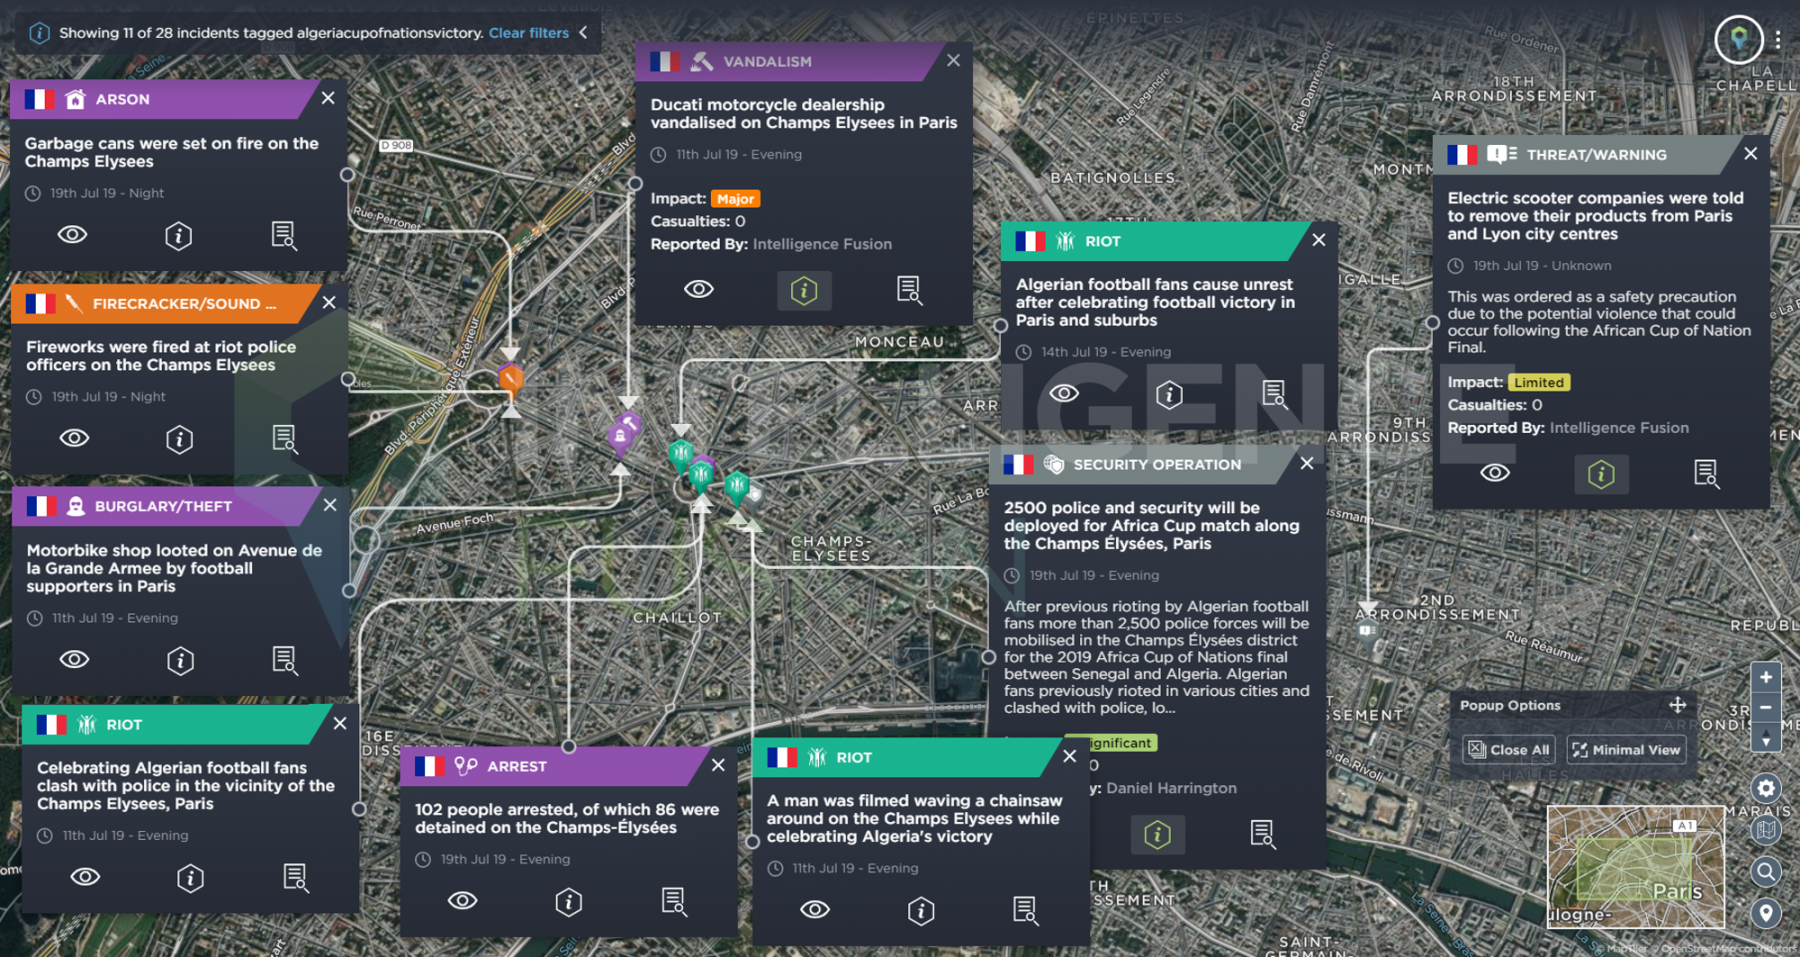 A map of the incidents along Champ Elysee in Paris during the African Cup of Nations tournament